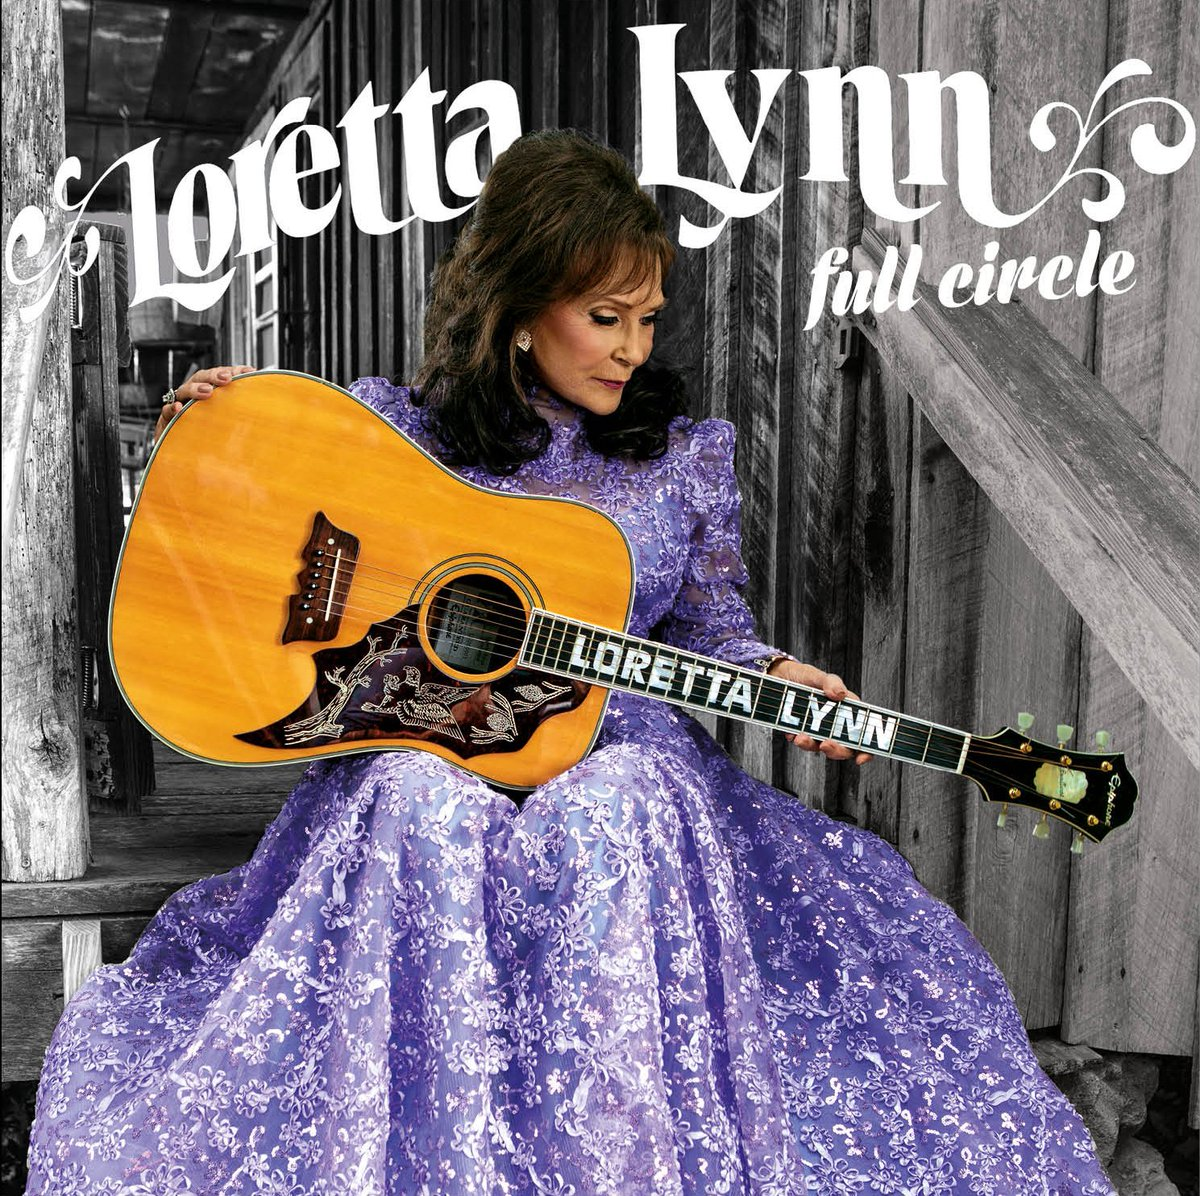 Loretta Lynn unveils first studio album in 10+ years! 'Full Circle' out 03/04: https://t.co/HSS0gViWOr #Loretta360 https://t.co/W2DVx3BeXQ